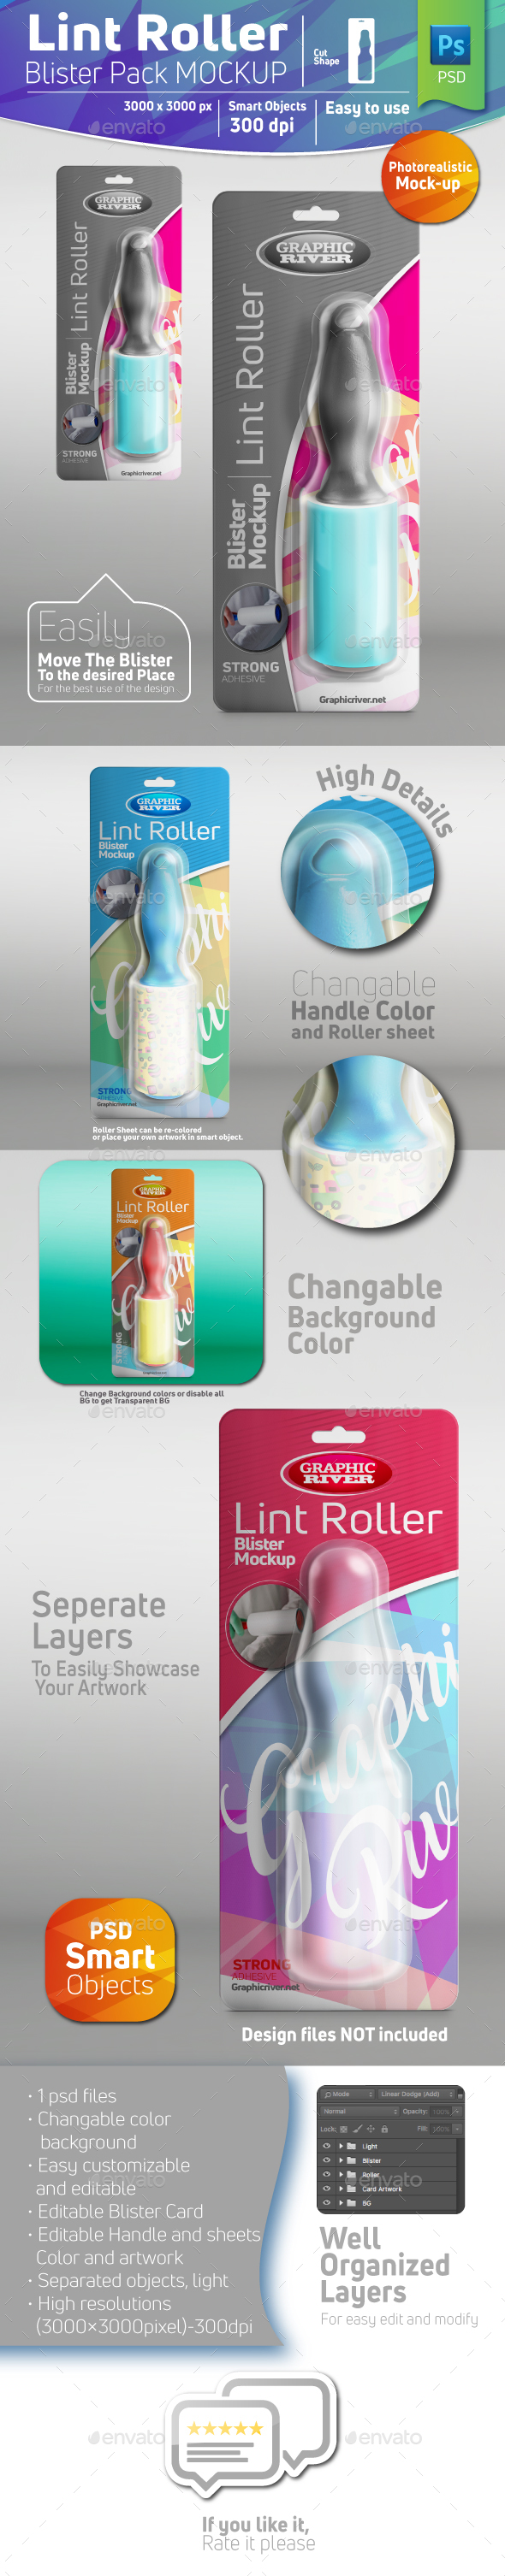 Lint Roller Blister Pack Mockup With Roller Inside - Miscellaneous Packaging